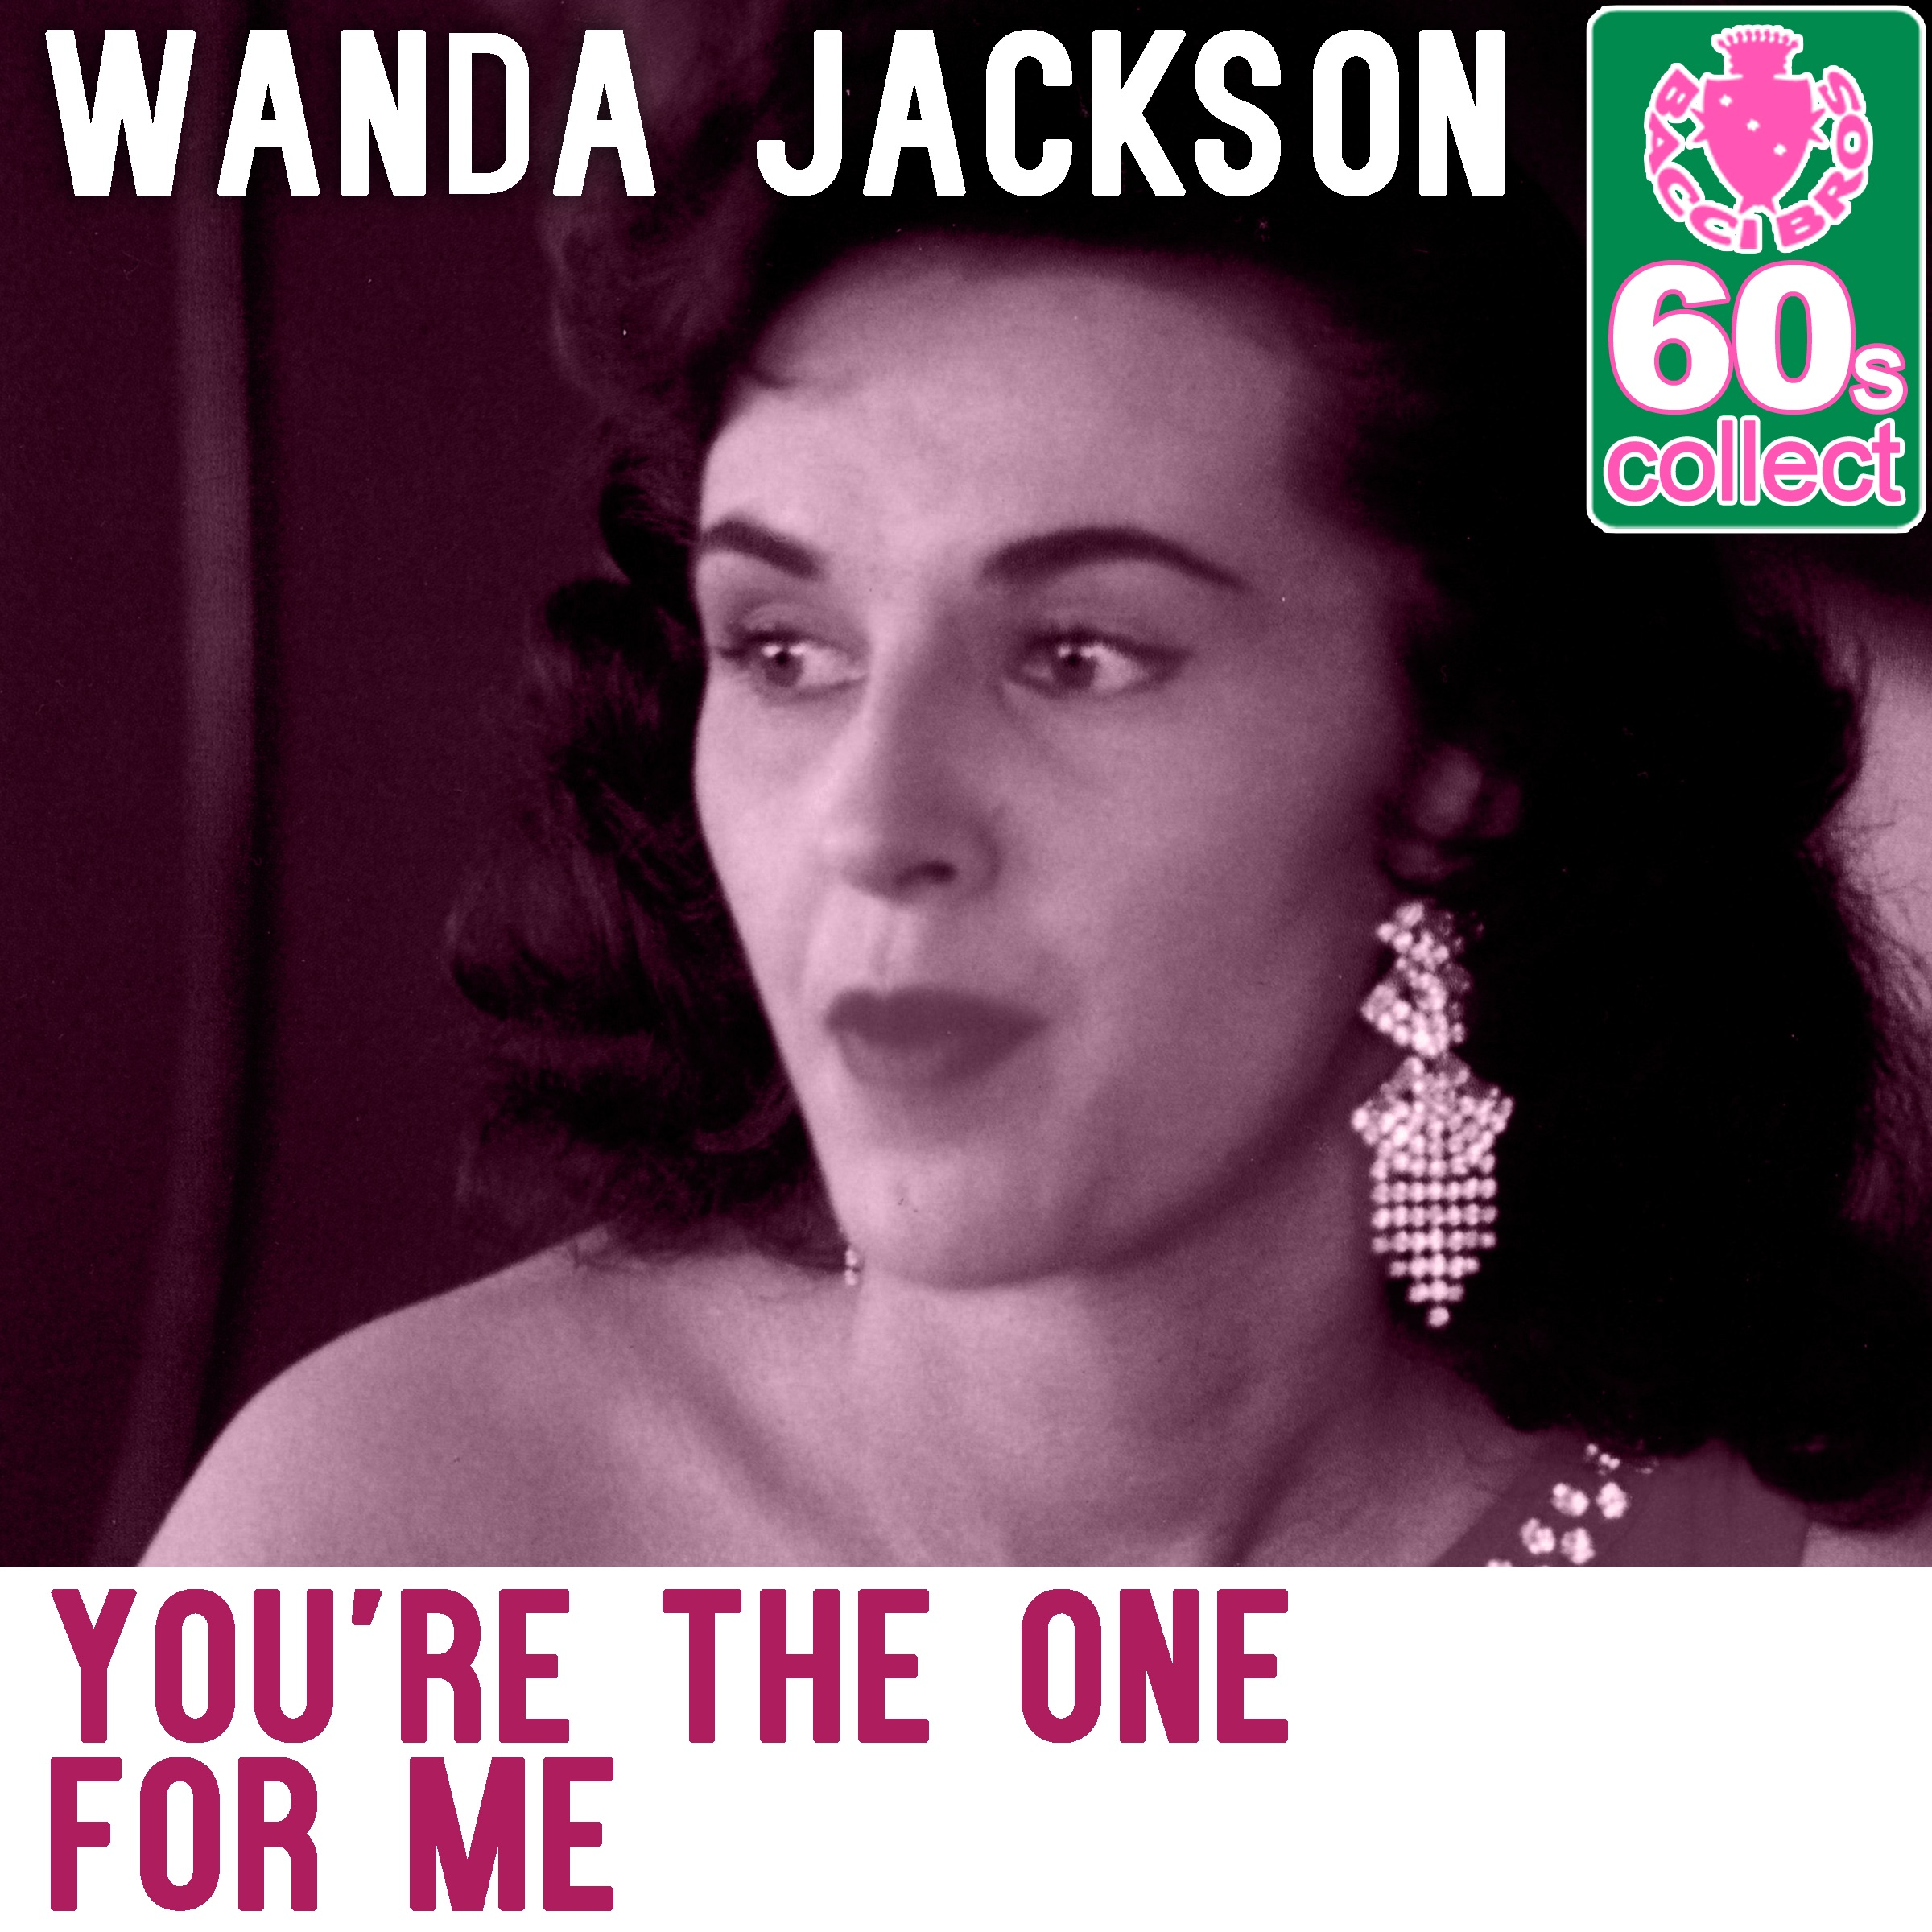 You're the One for Me (Remastered) - Single